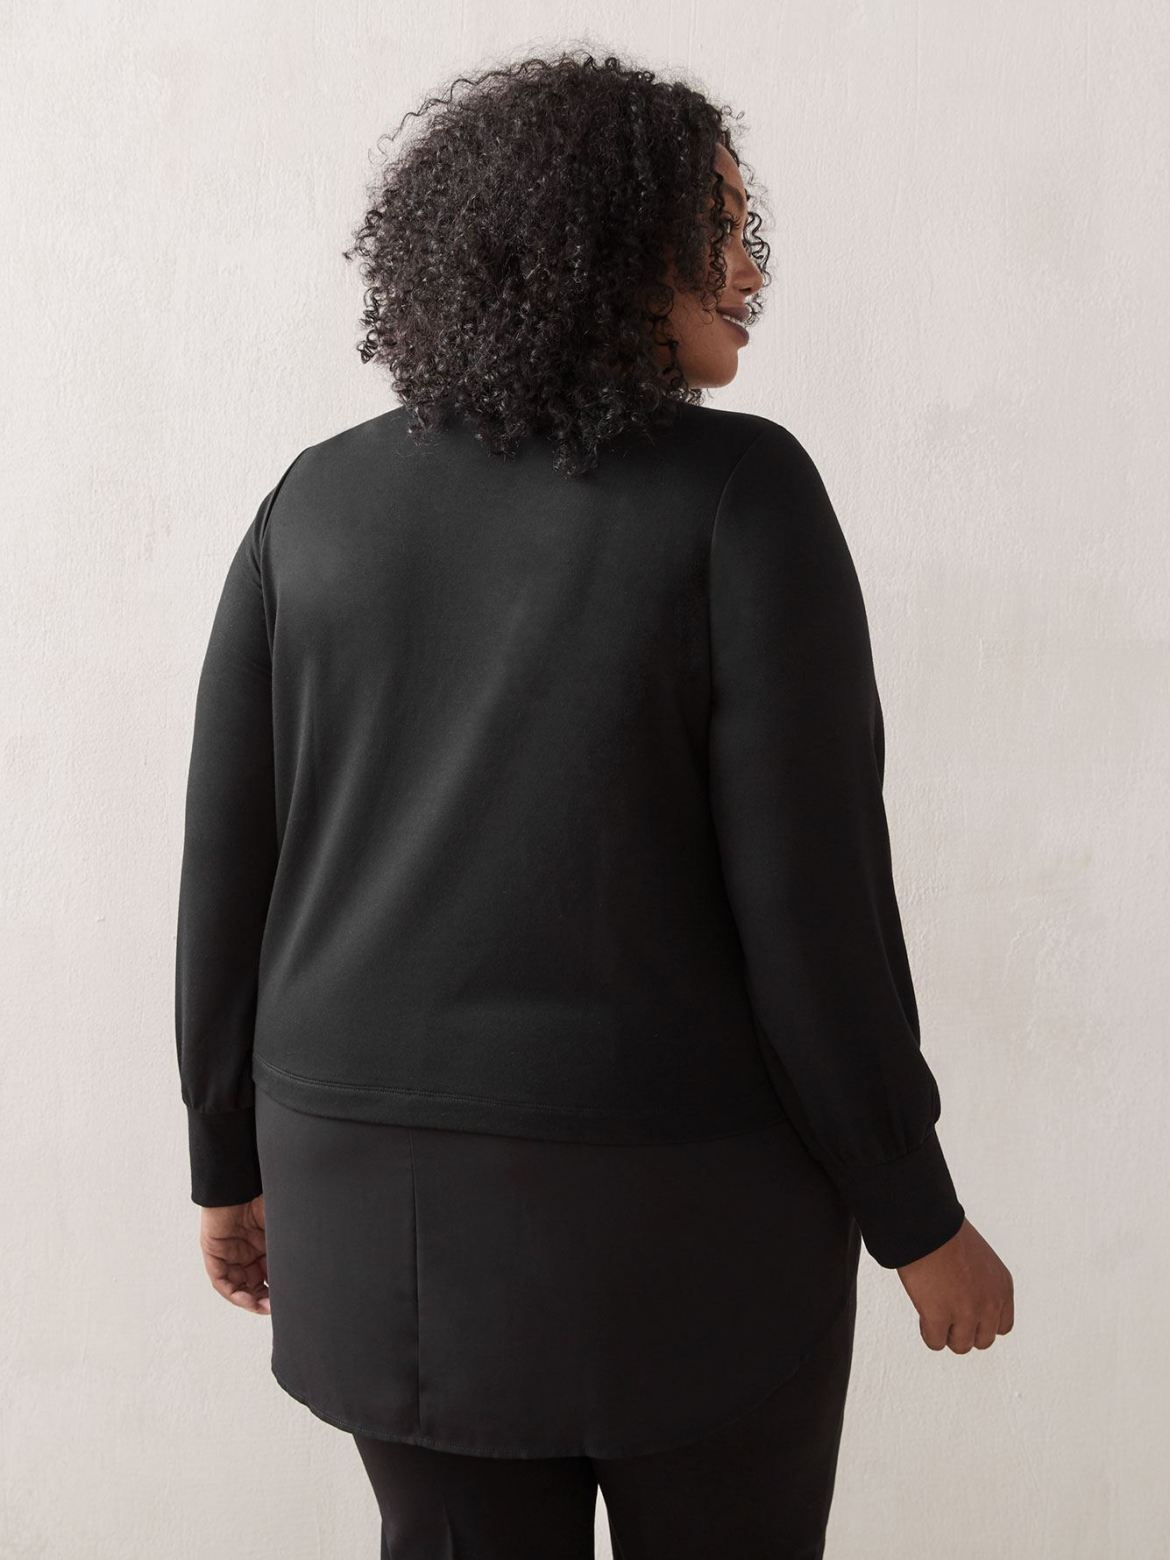 Long Sleeve Fooler Top - In Every Story